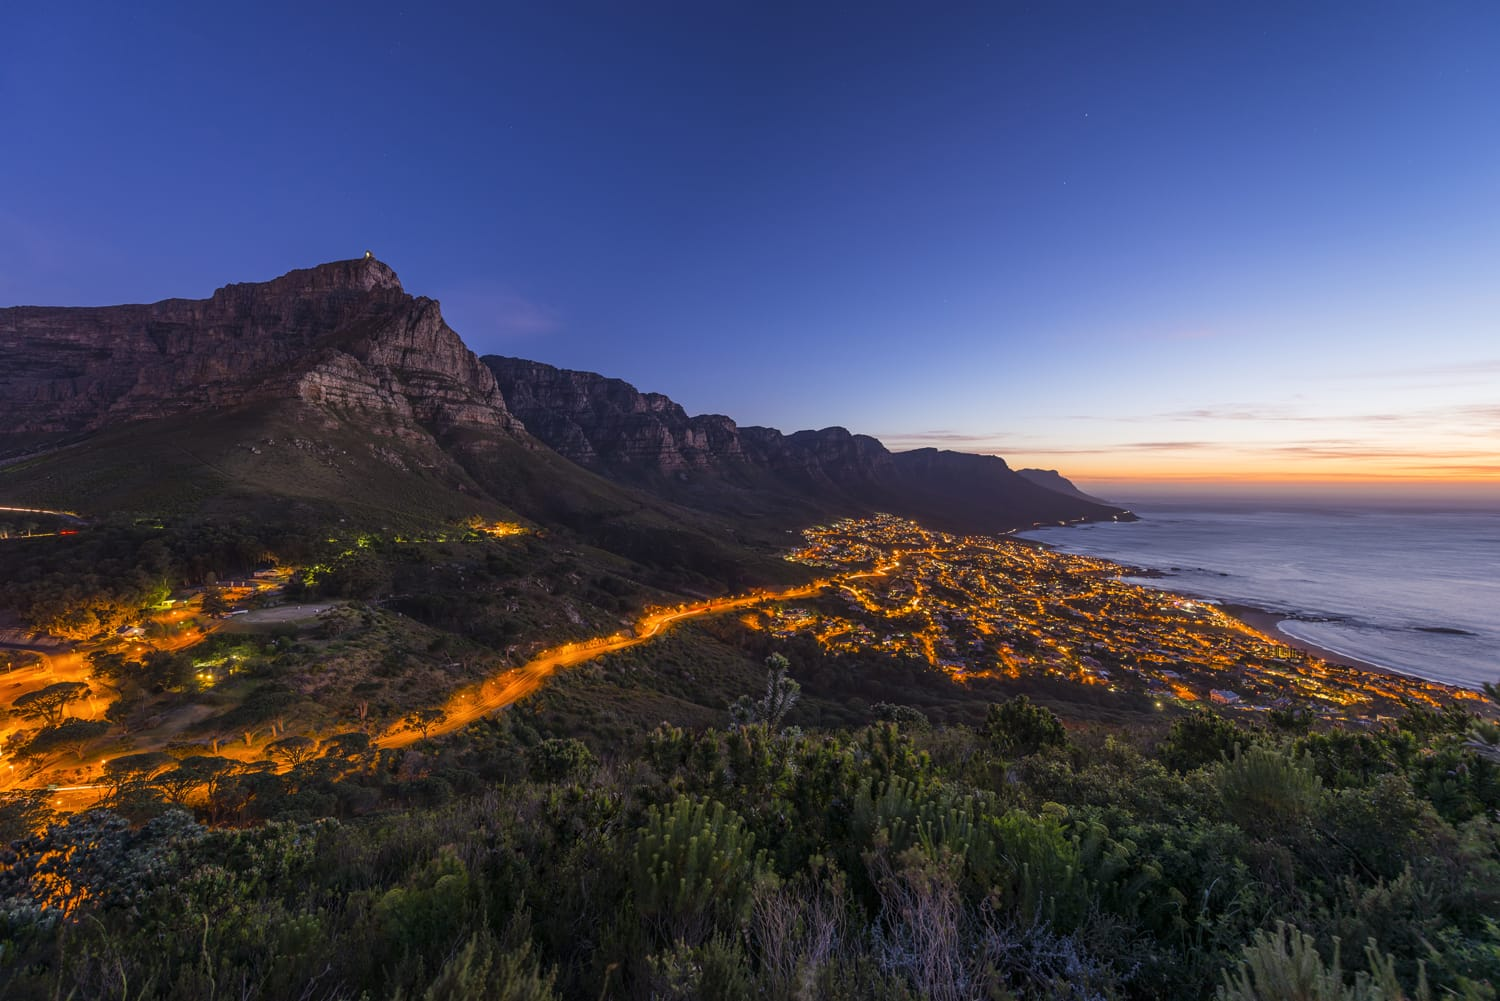 Cape Town's Table Mountain & Twelve Apostles seen from Lions Head hiking peak & Twelve Apostles with camps bay suburb and ocean below